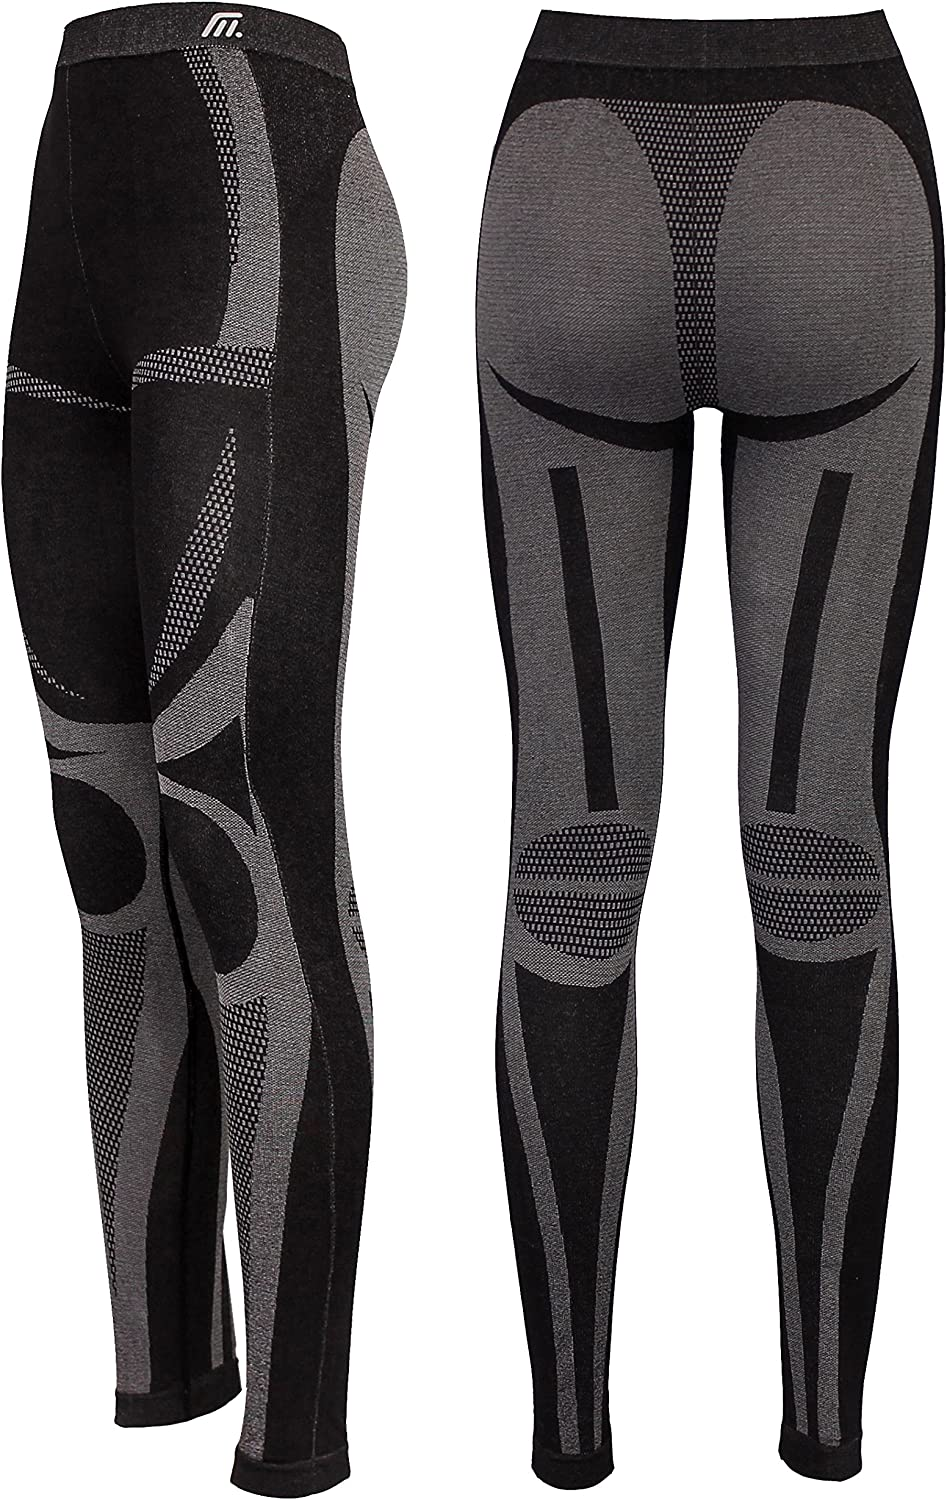 Motorcycling Thermals Highly-Elastic Medico Womens Seamless Set of Professional Functional Underwear for Skiing